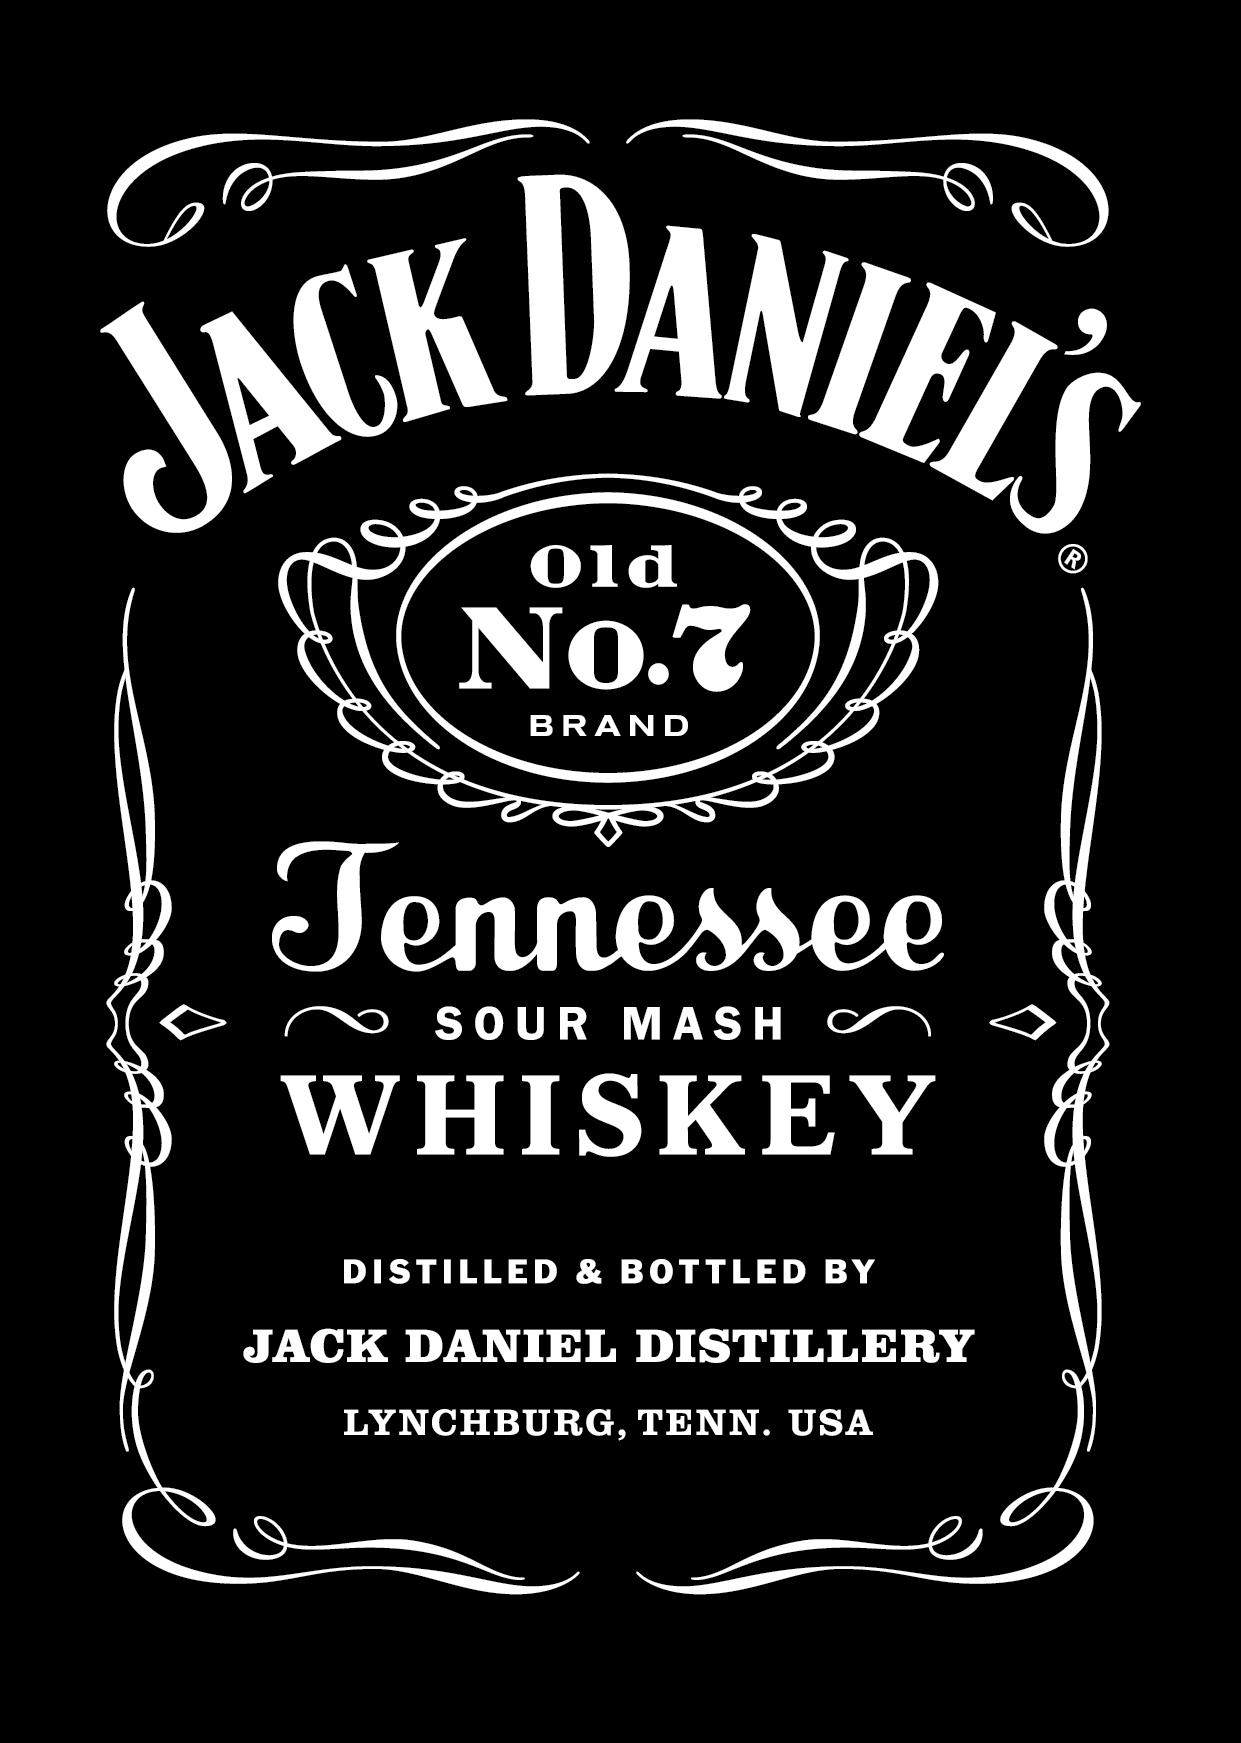 Jack Daniels, more than just a whiskey - Jack Daniels Logo Vector PNG